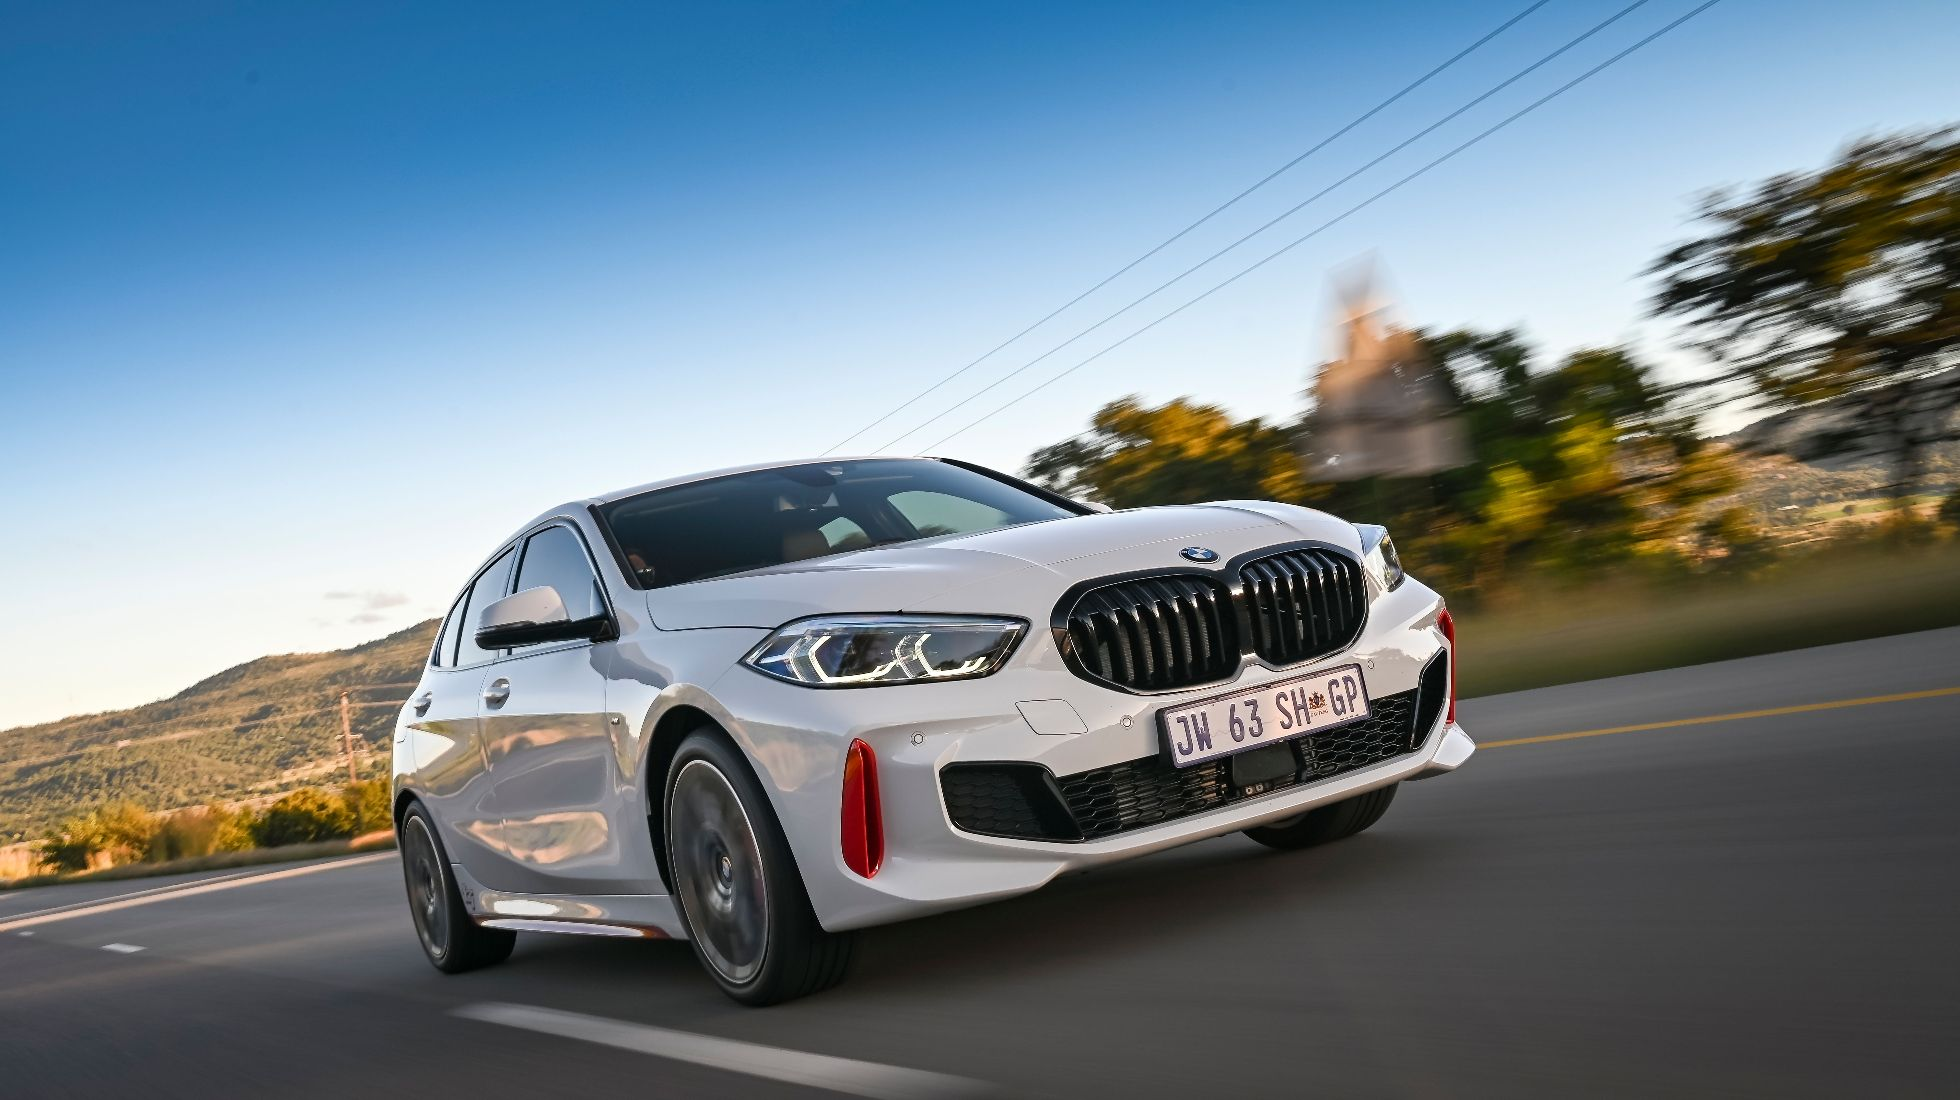 FIRST DRIVE: BMW's 128ti has VW's GTI on the spot